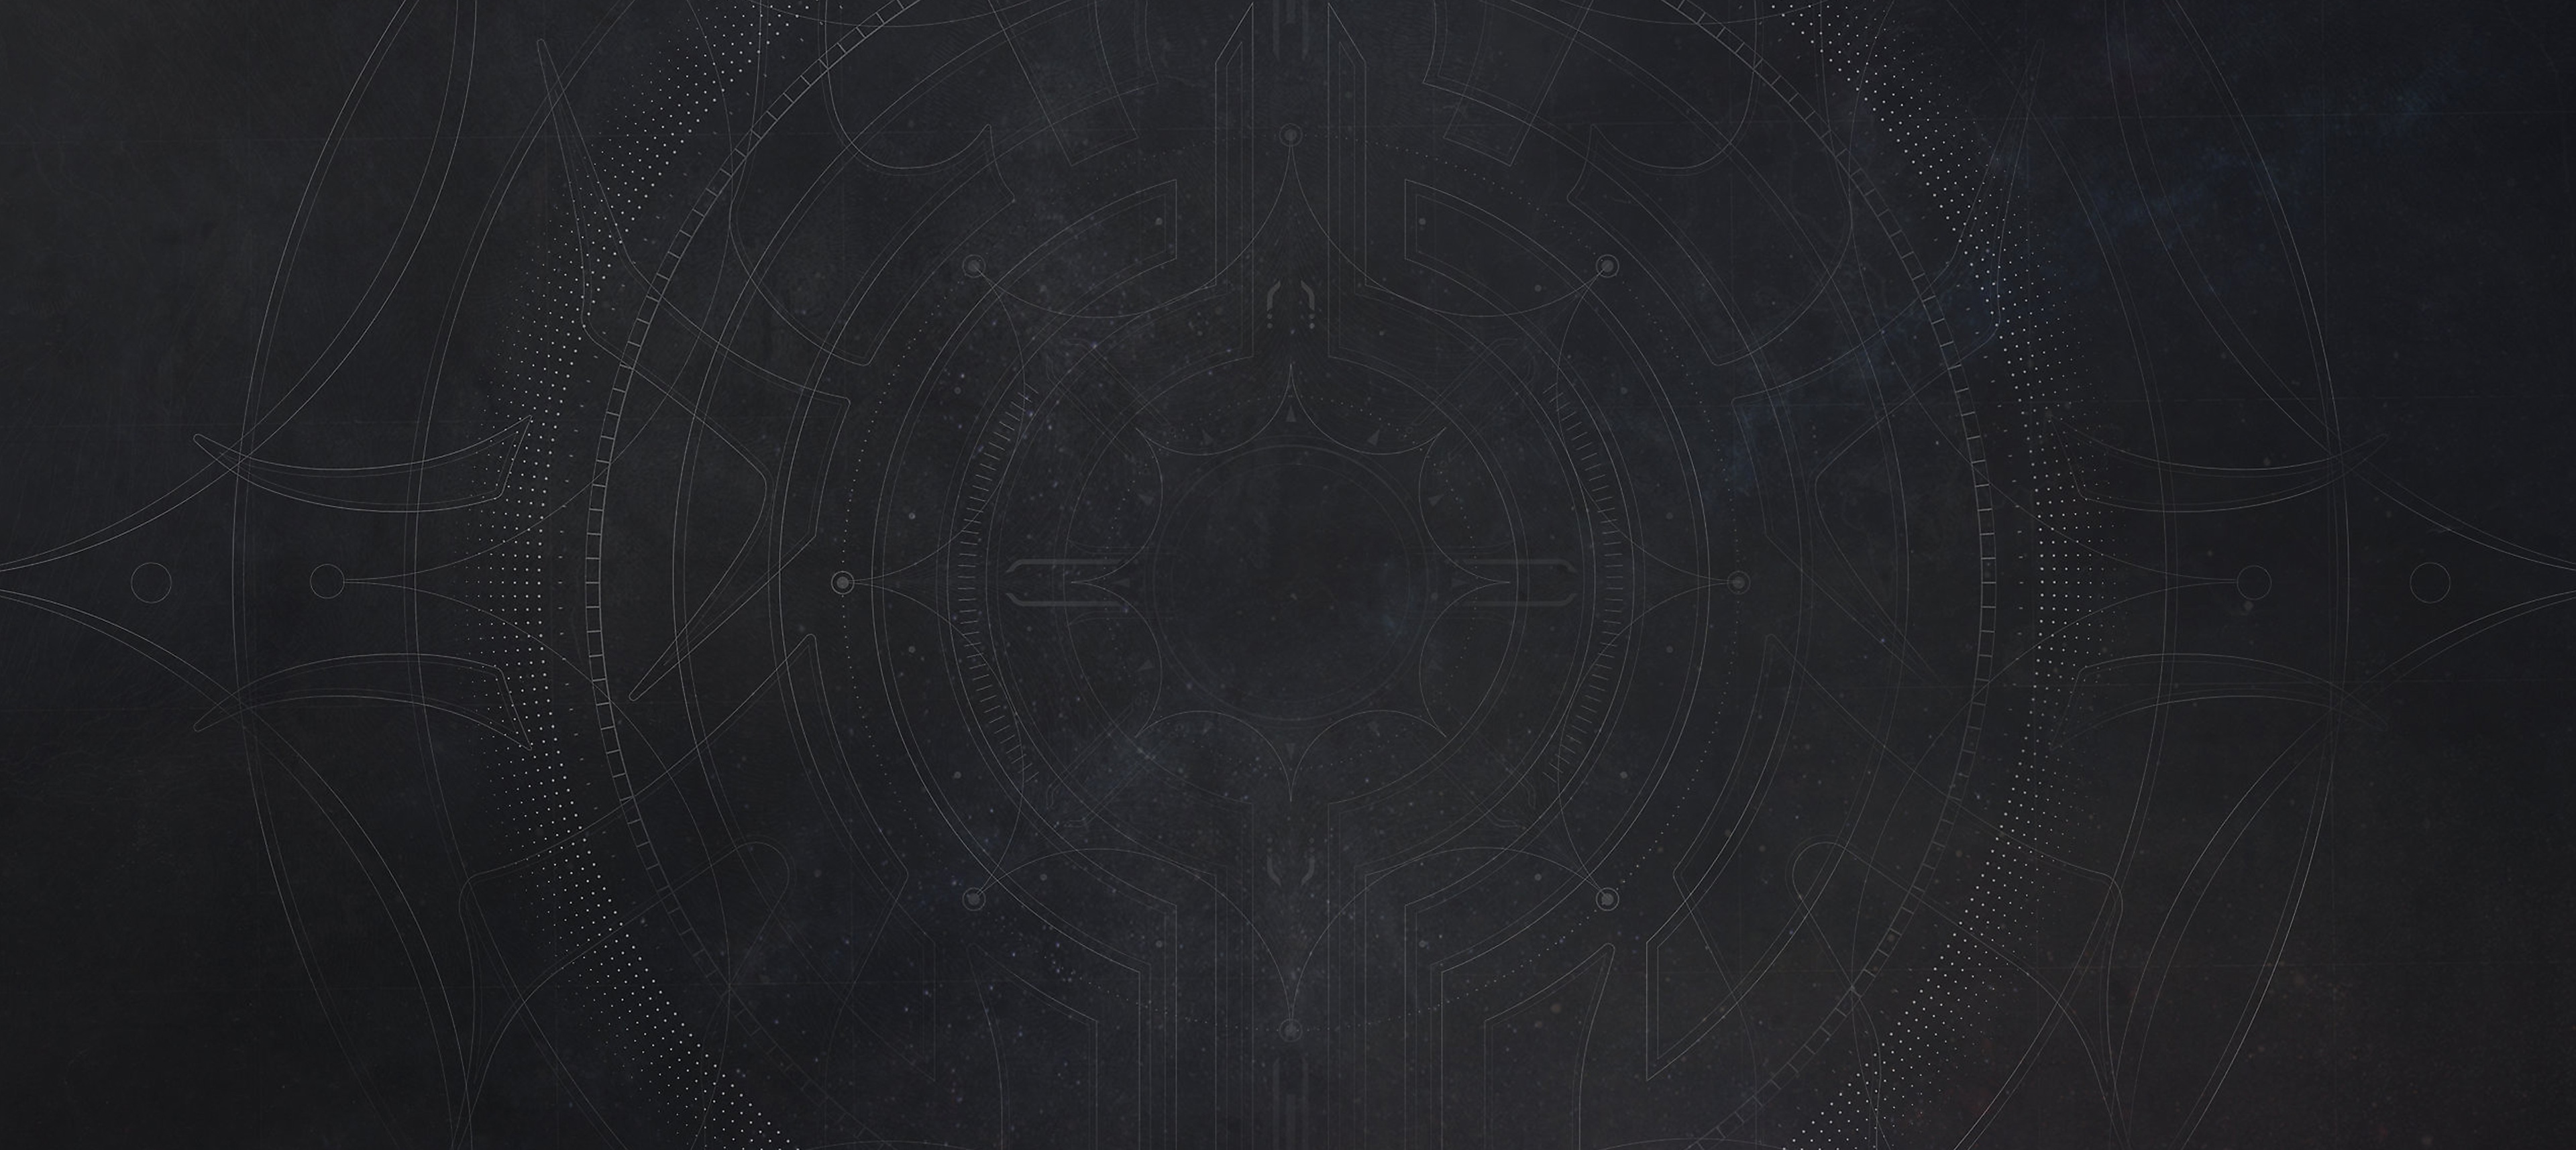 Destiny 2: Shadowkeep - Section Background